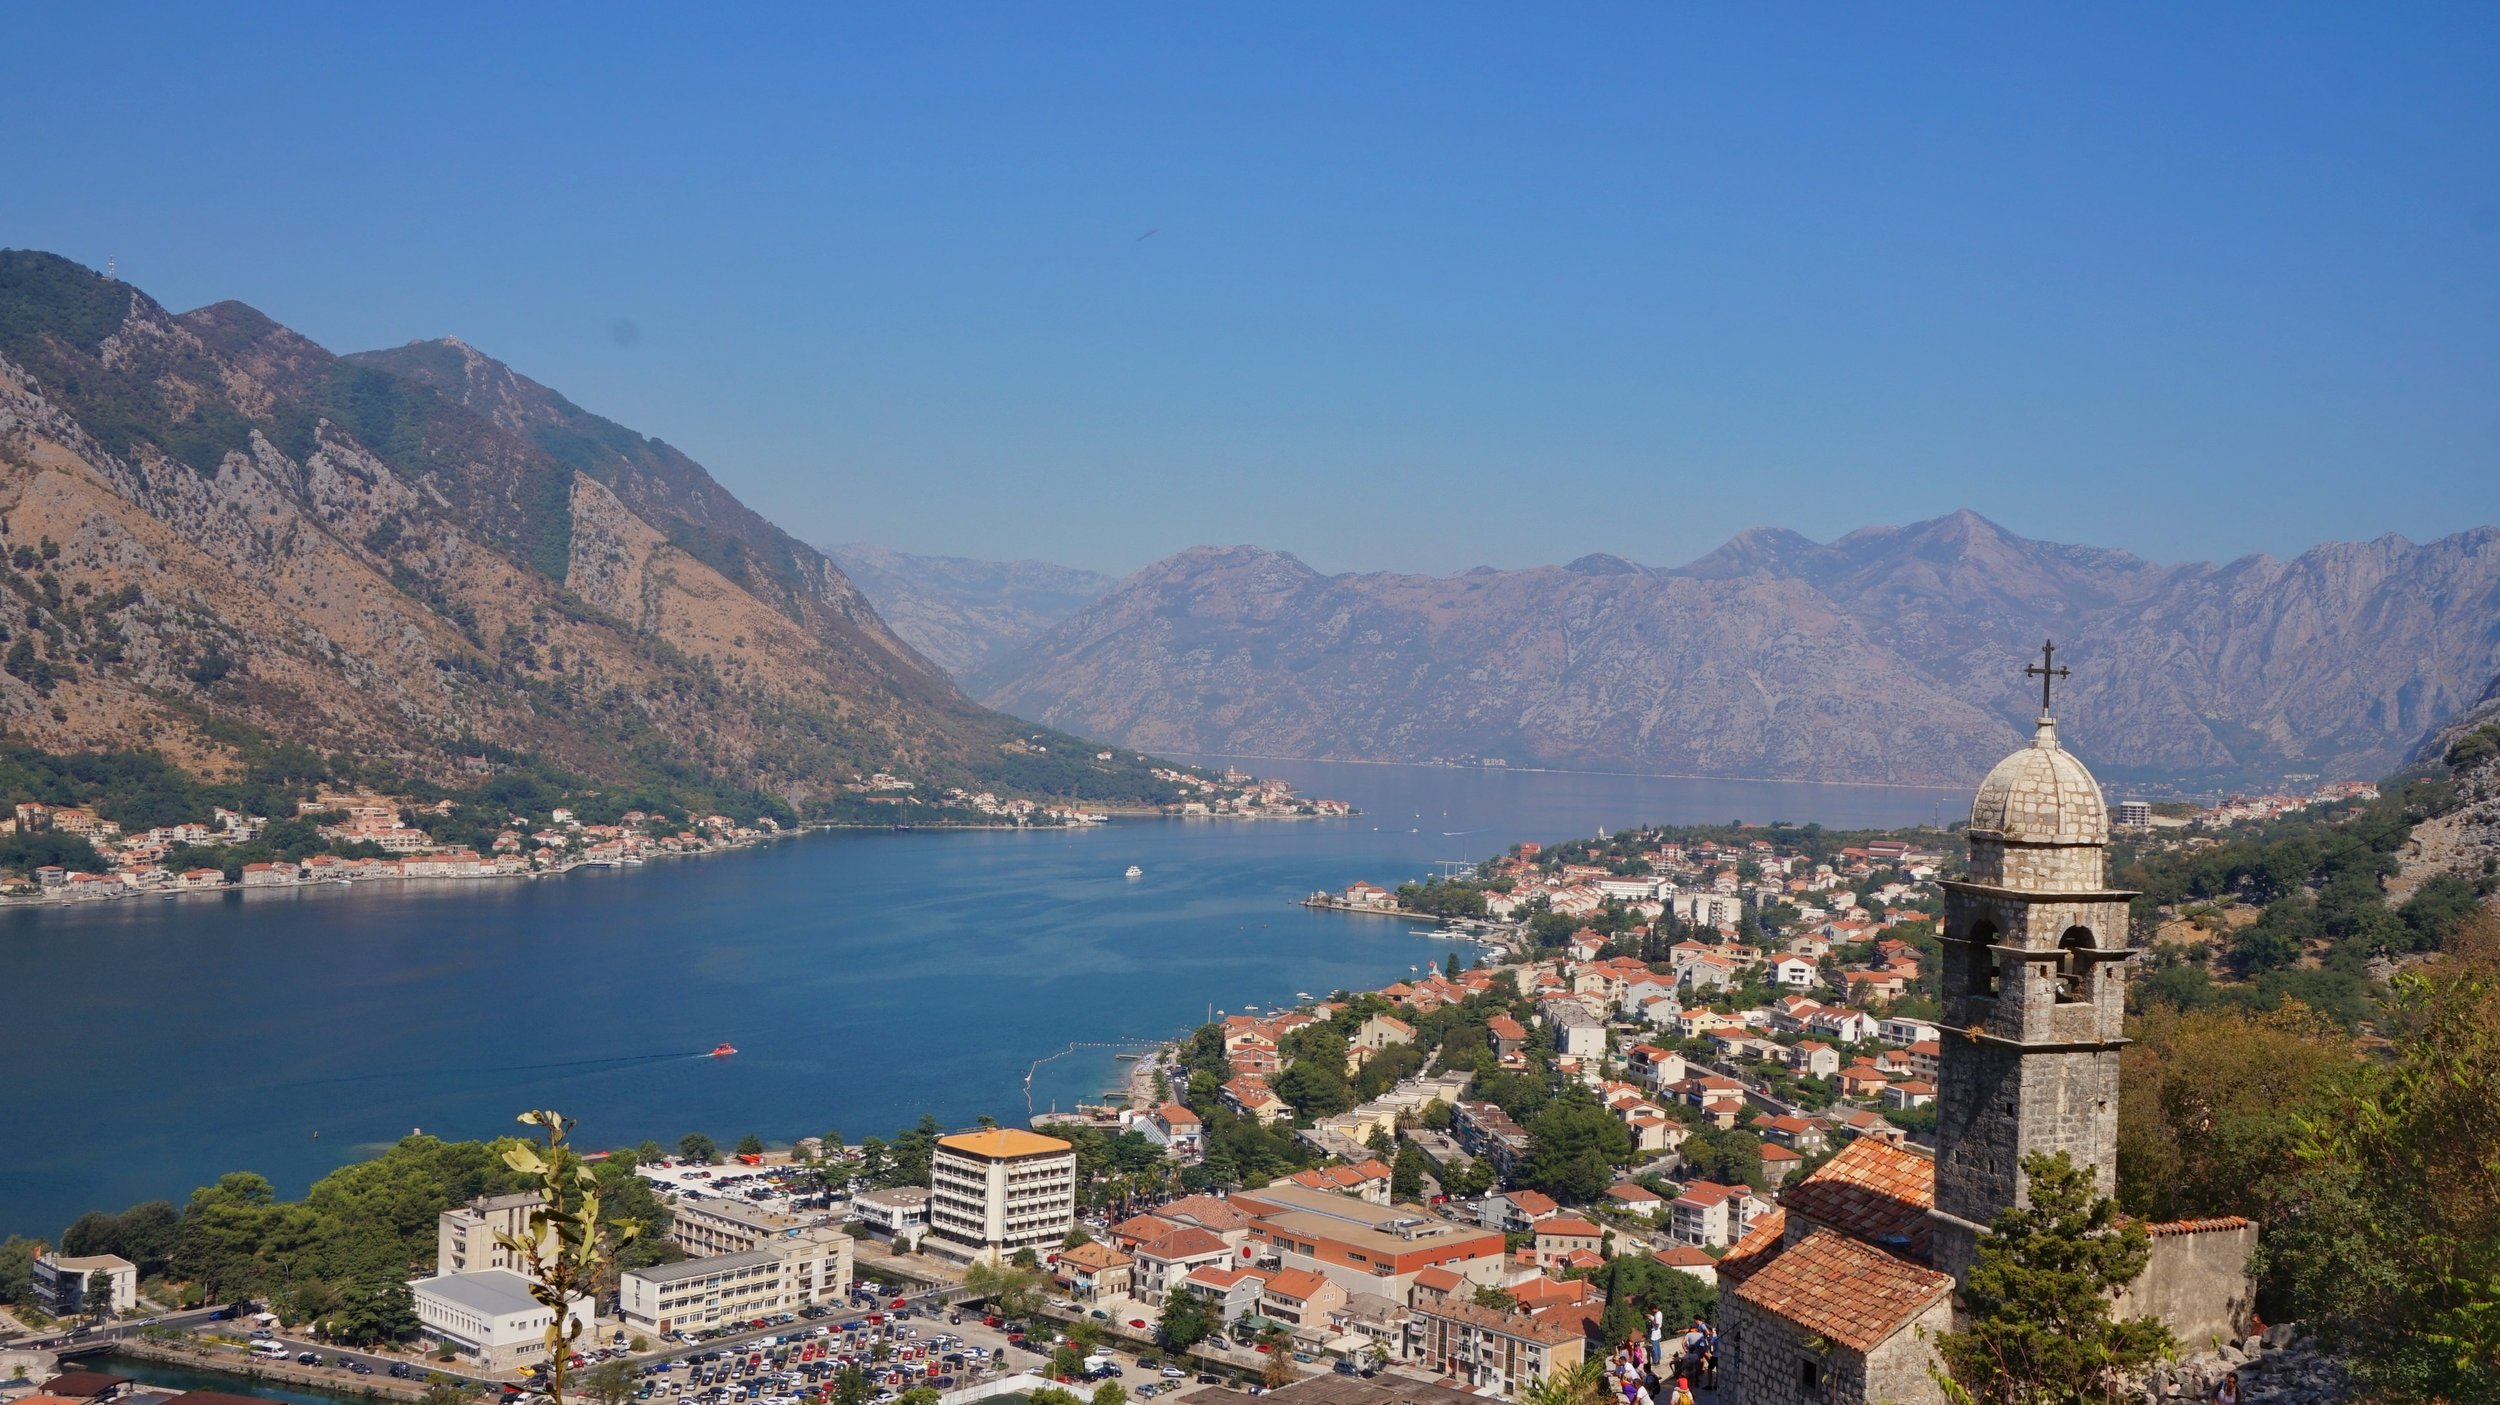 One of the must see places in Montenegro. Maybe the biggest tourist atraction in Montenegro, Kotor appeares on ervery itinerary for Montenegro.